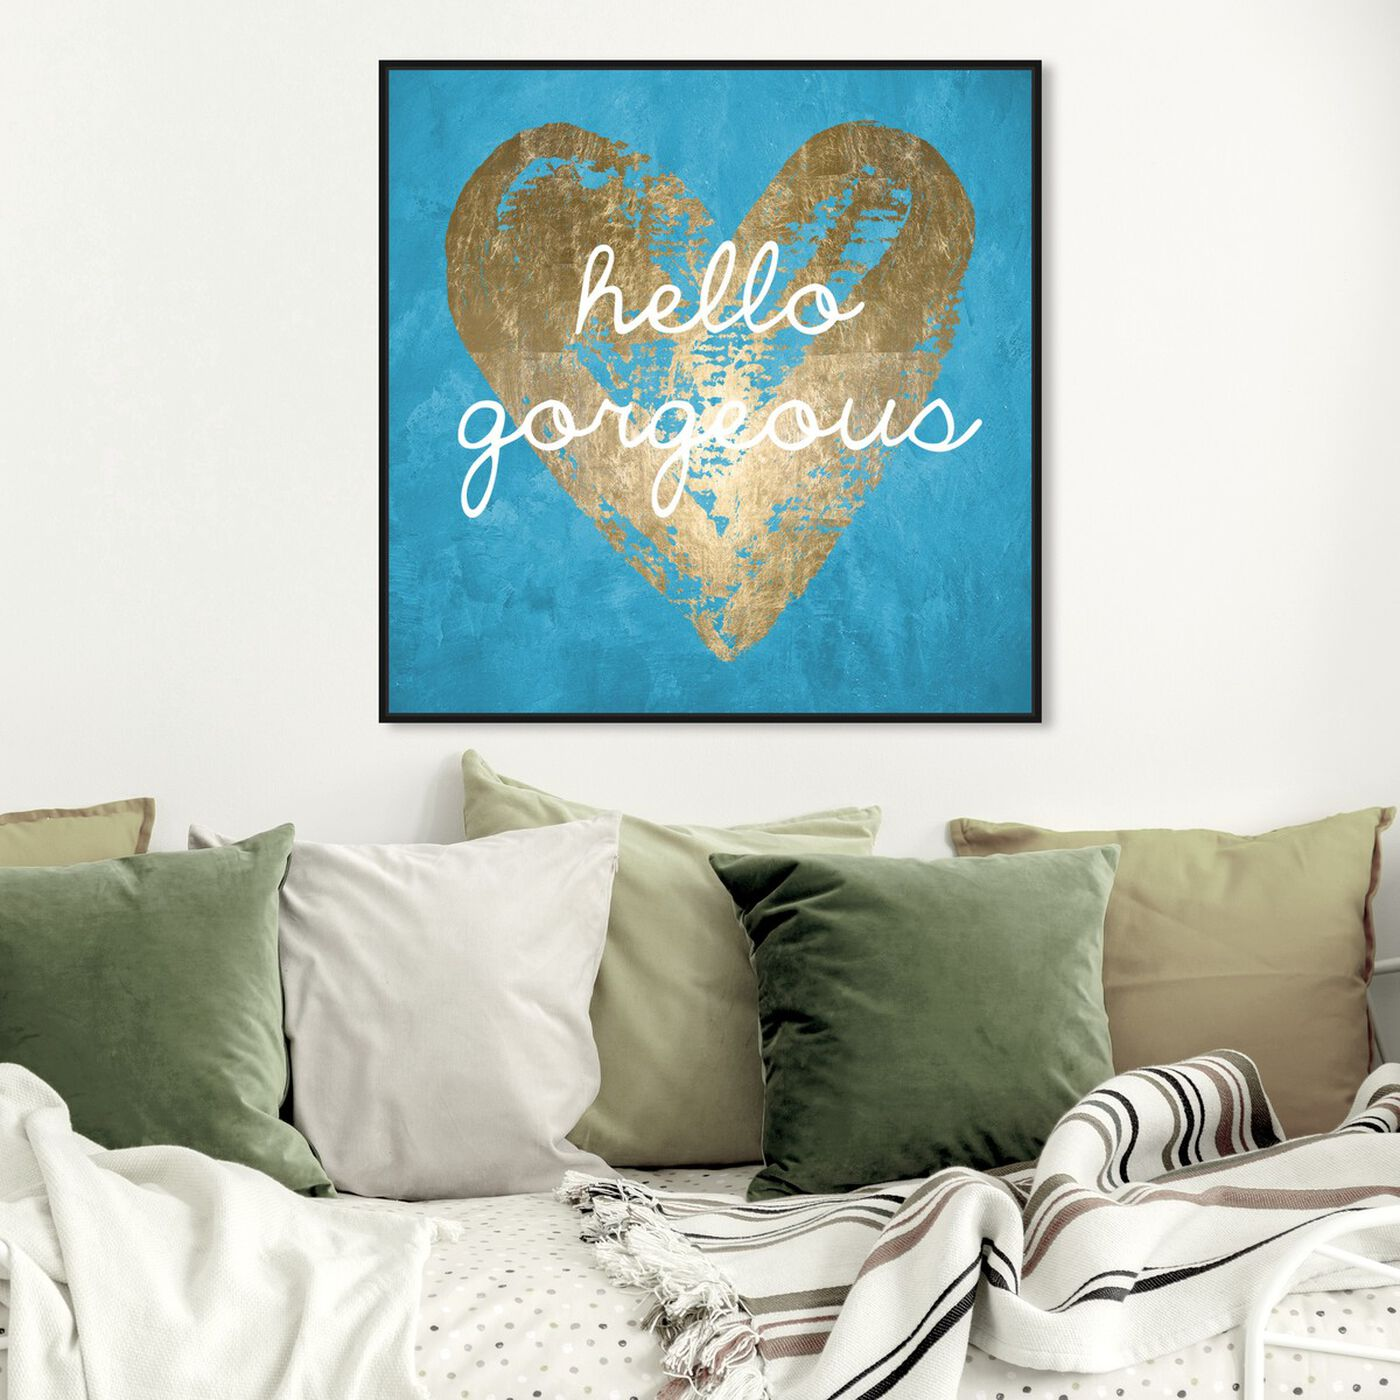 Hanging view of Gorgeous Salute Turquoise featuring fashion and glam and hearts art.